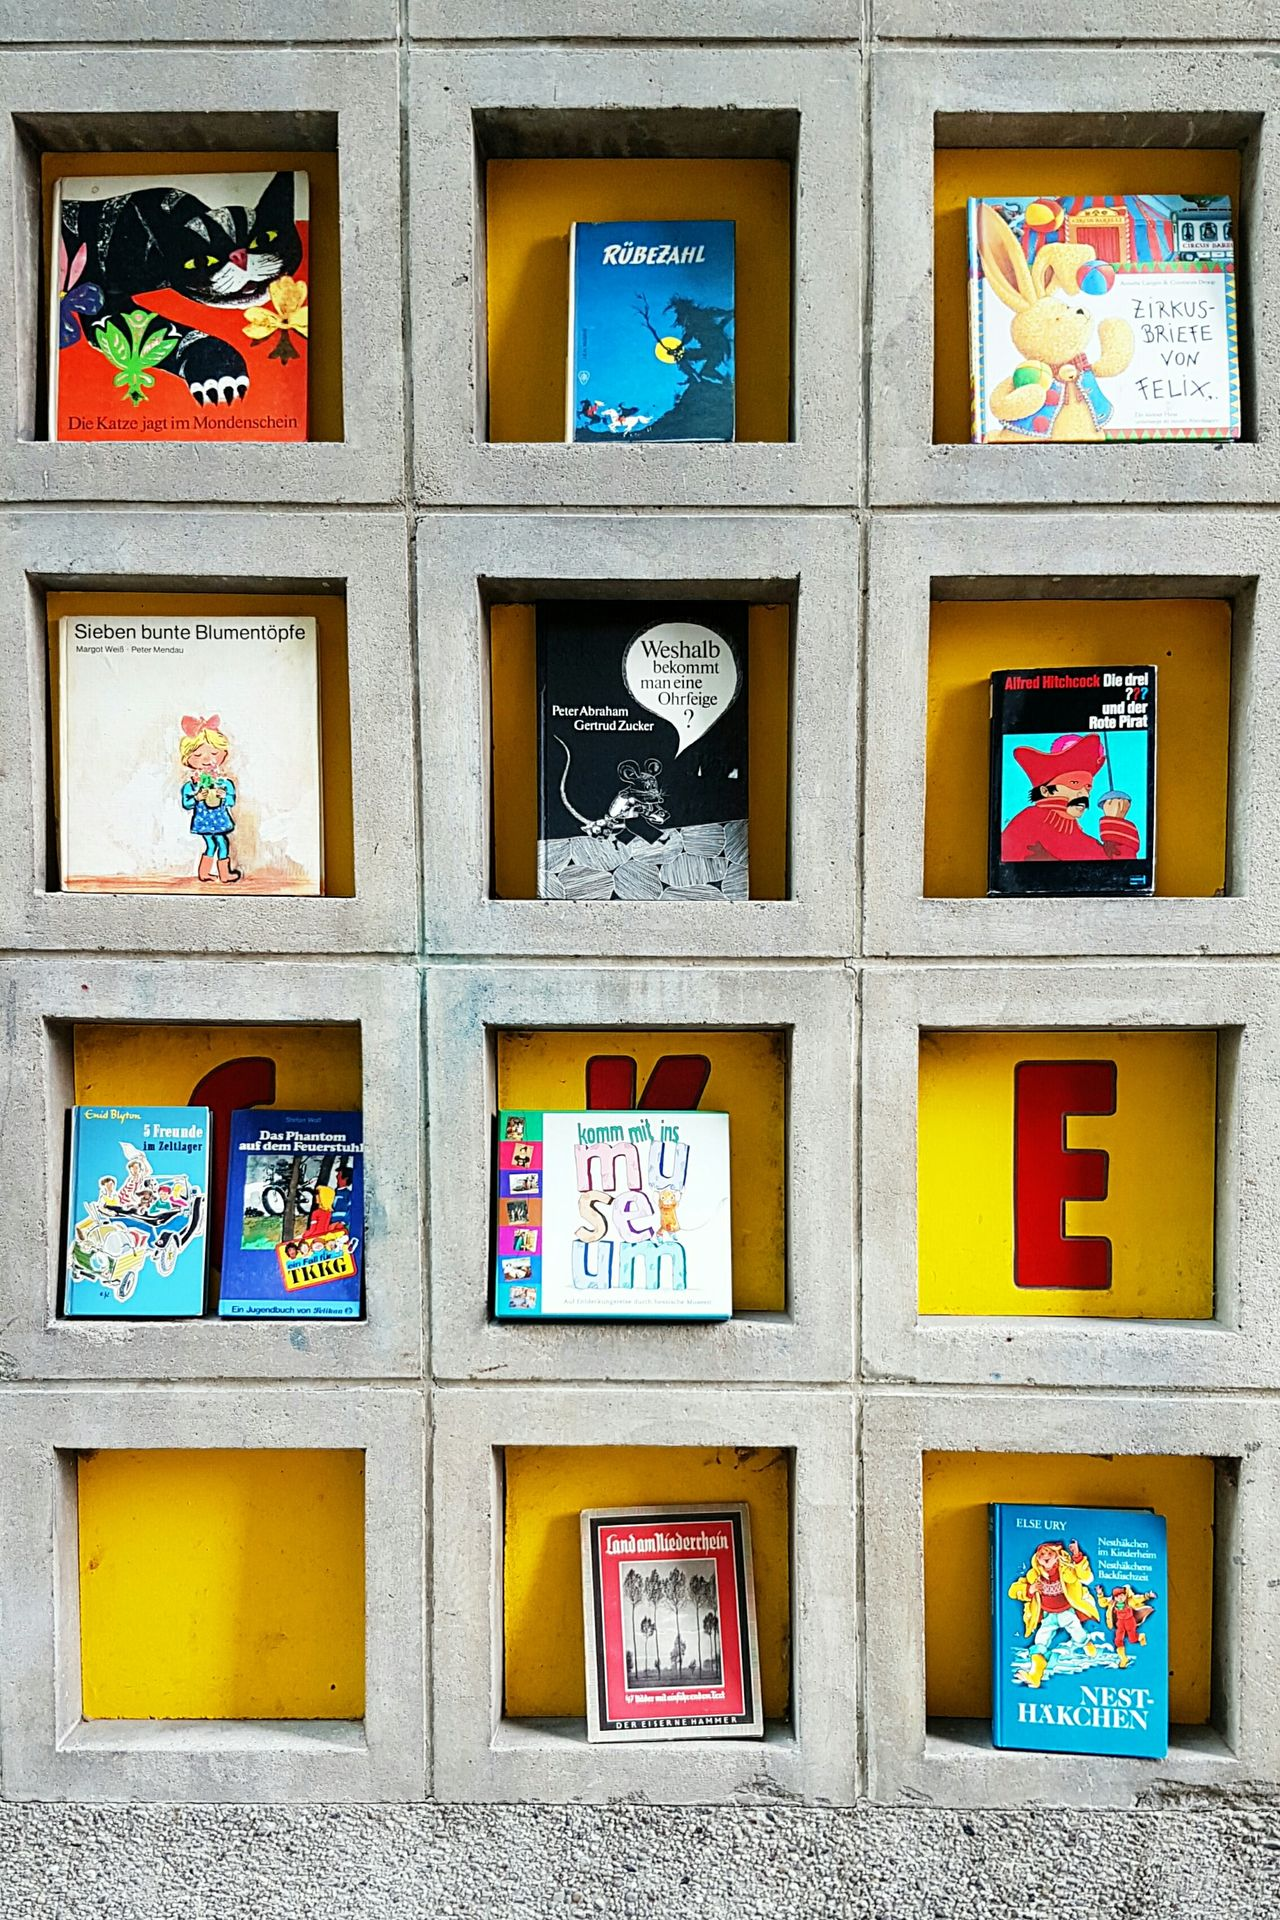 Picoftheday Photooftheday Full Frame Backgrounds Window Bookstagram Booklover BookLovers